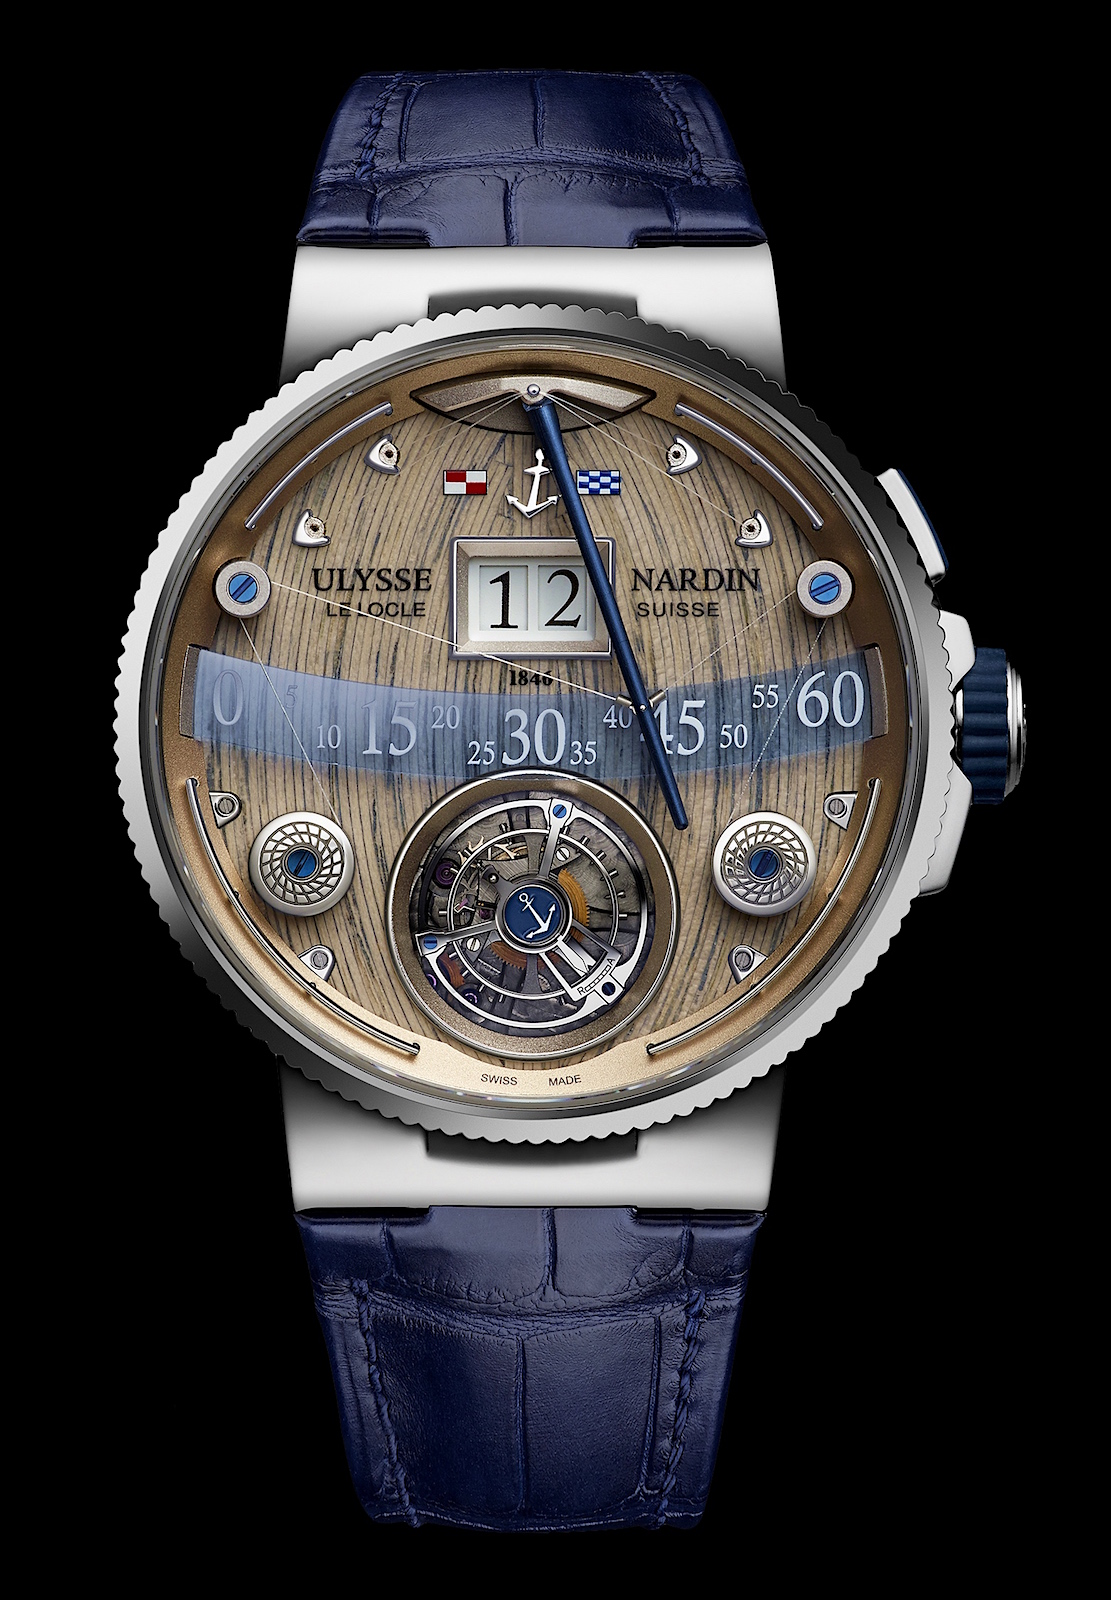 Ulysse Nardin en Baselworld 2016 - Grand Deck Marine Tourbillon